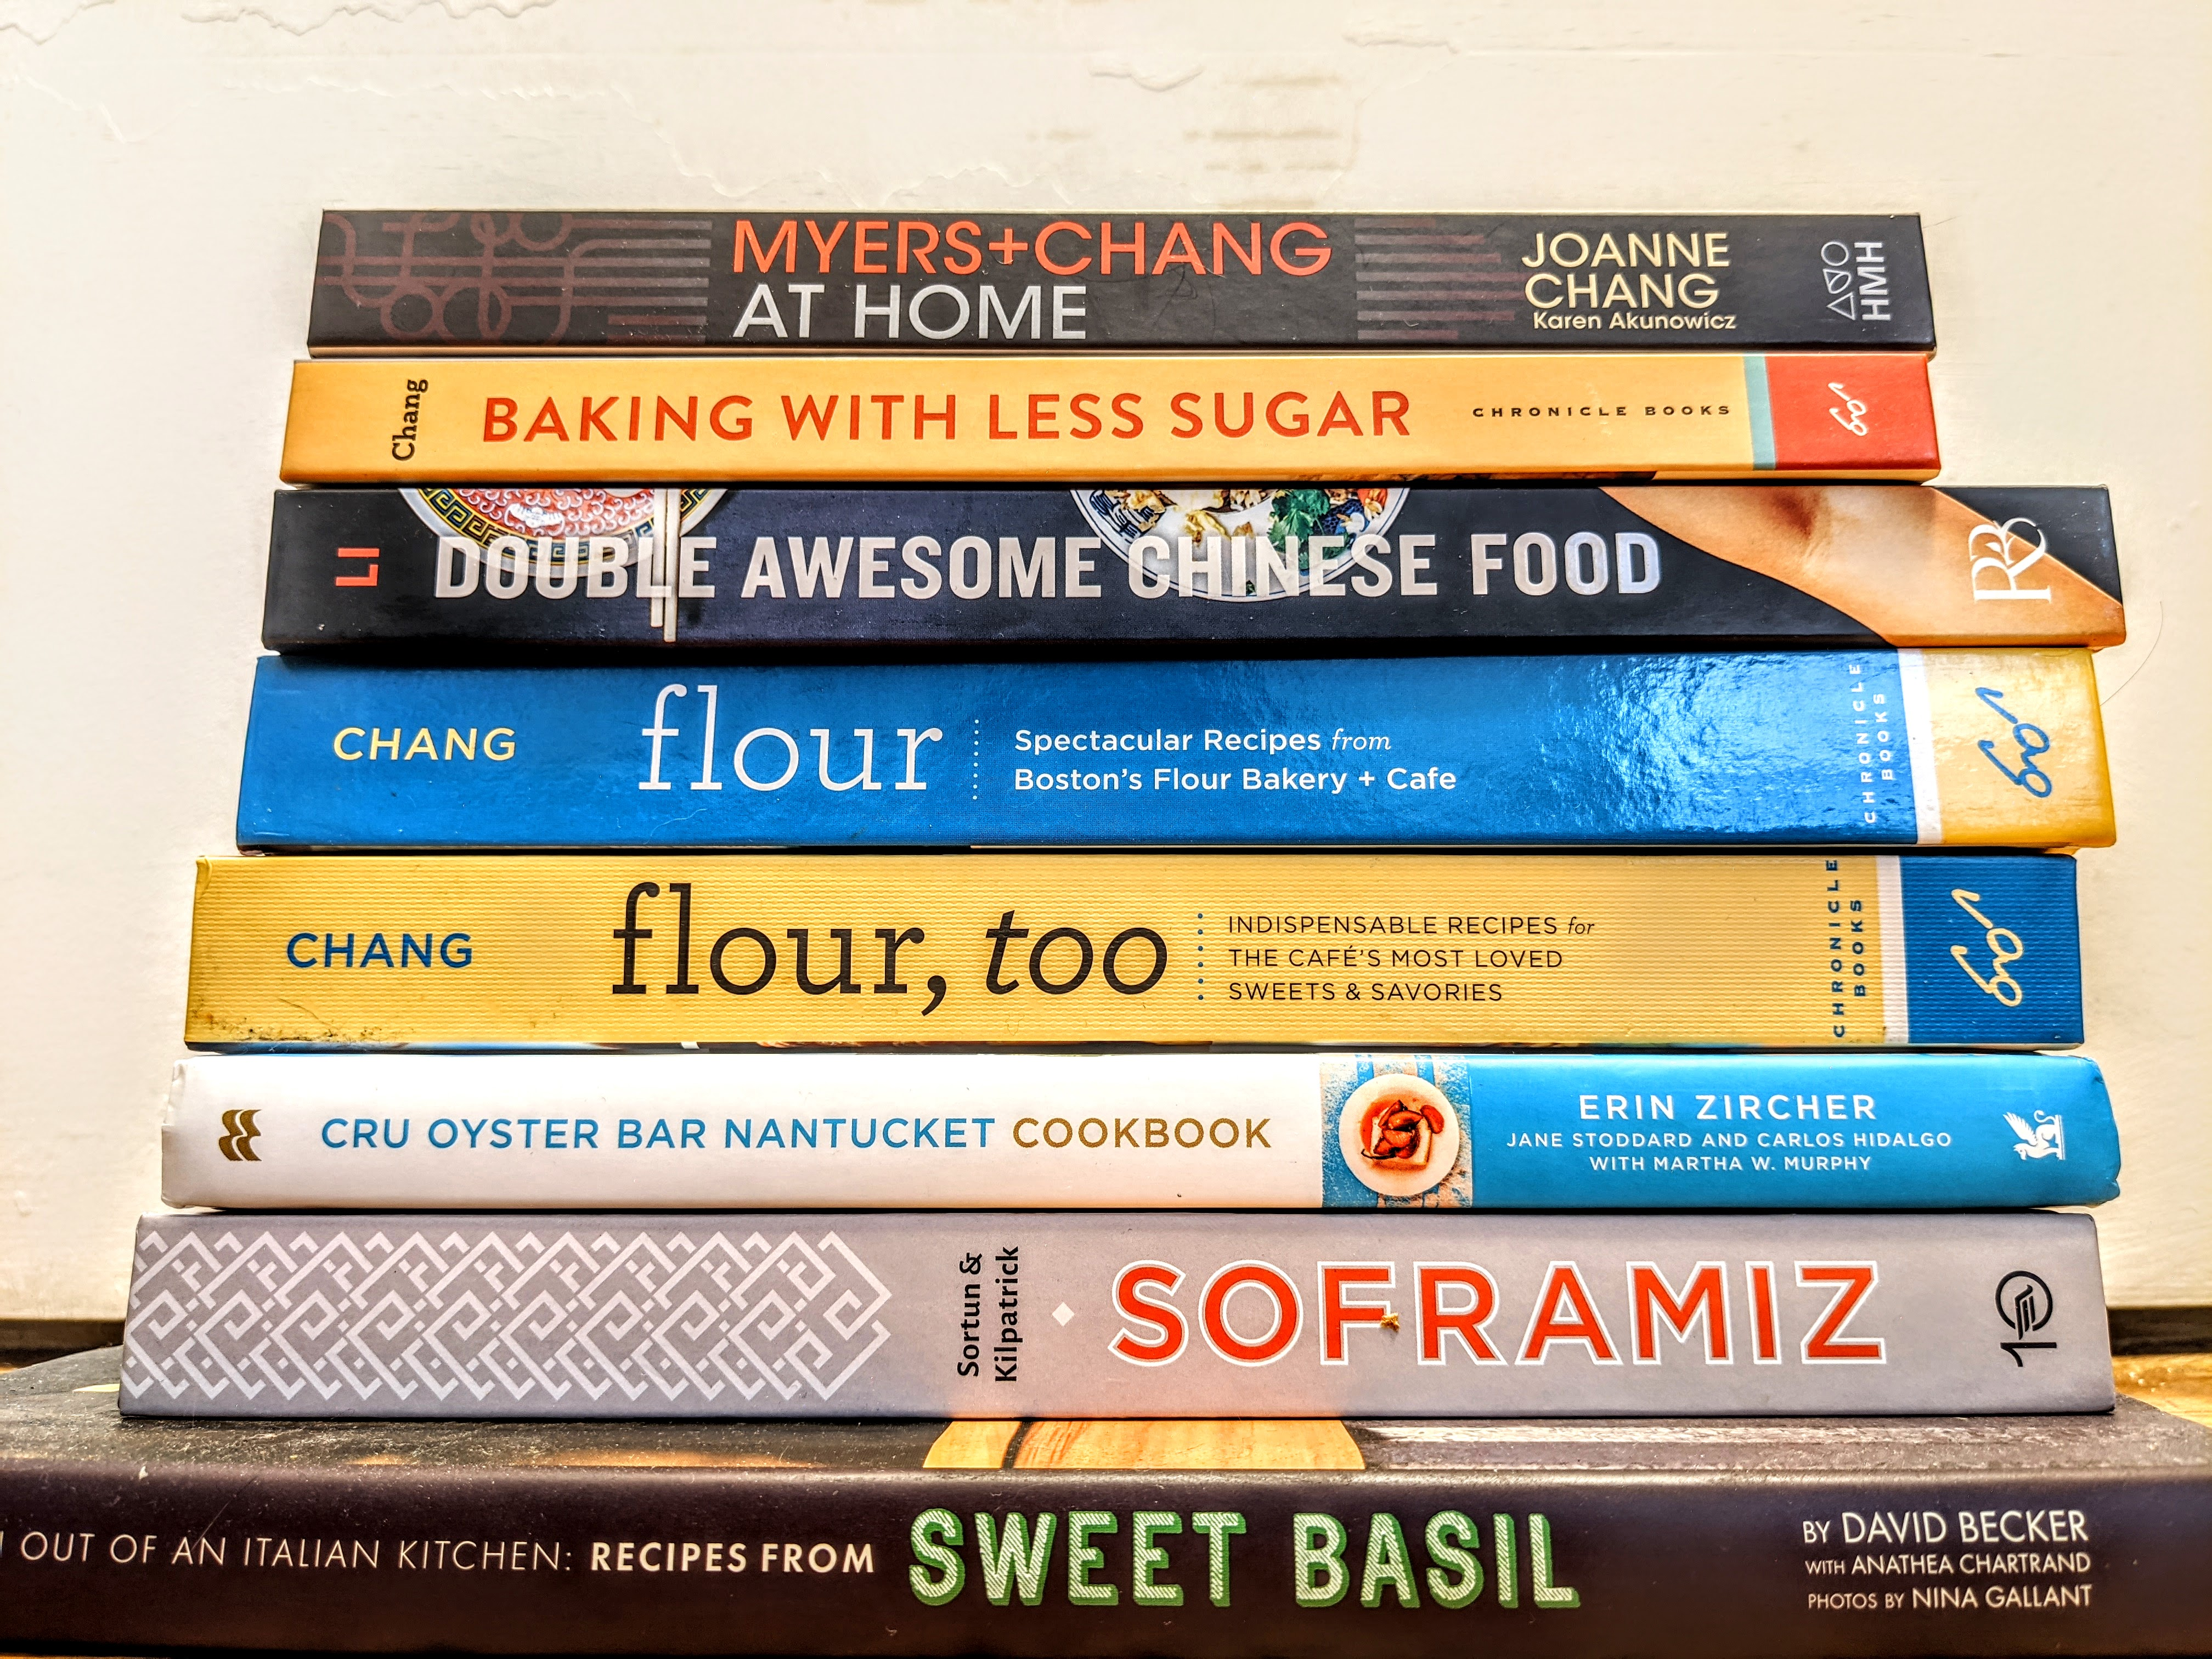 A stack of eight cookbooks, spines facing the camera, with titles including Sweet Basil, Soframiz, Double Awesome Chinese Food, and more